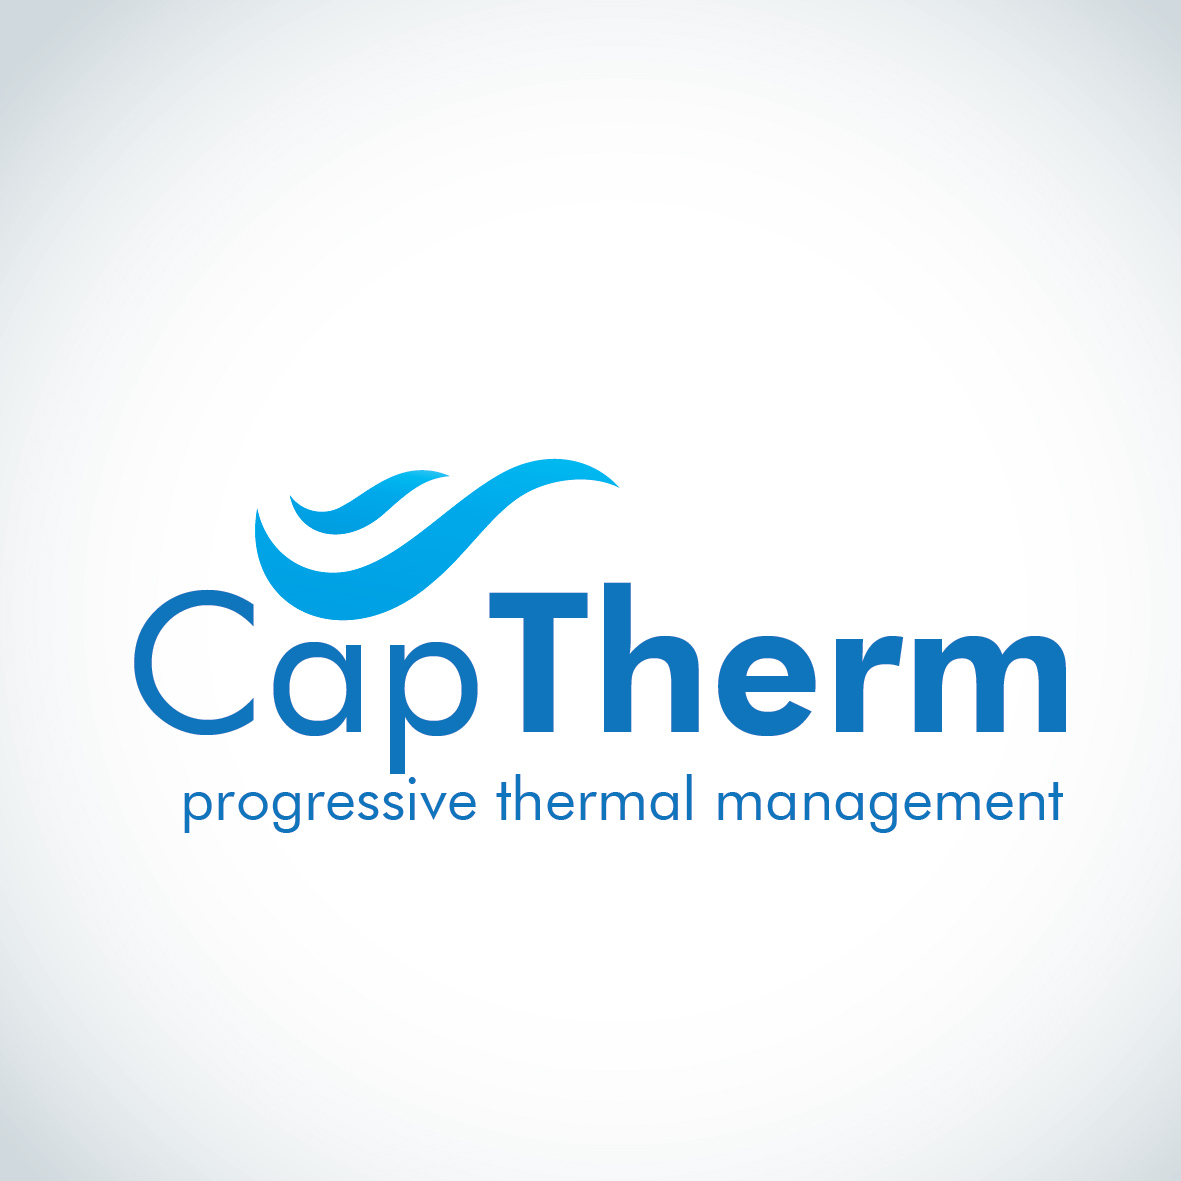 Logo Design by aesthetic-art - Entry No. 11 in the Logo Design Contest CapTherm Logo.